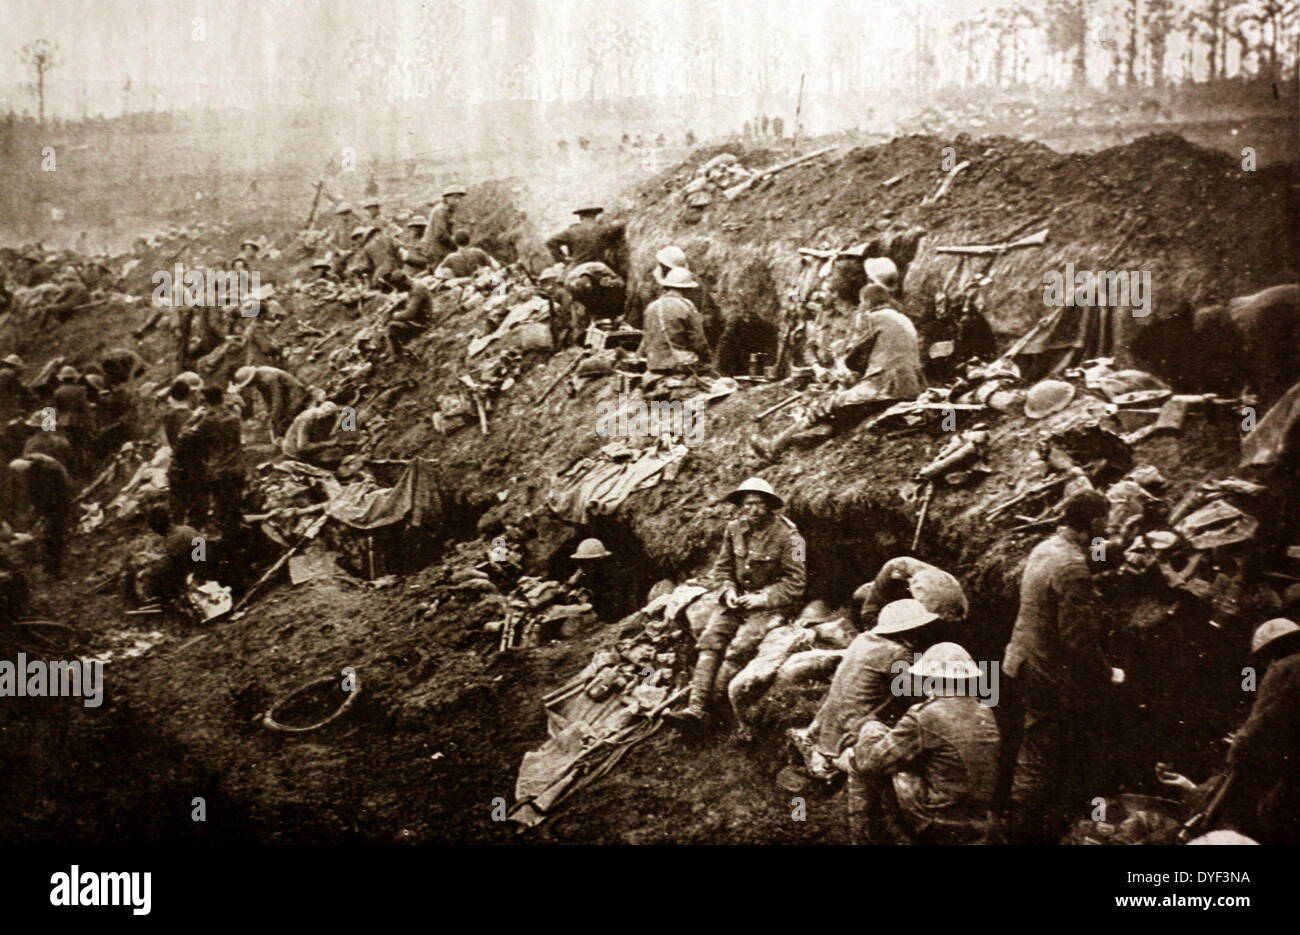 Photograph of the trenches during the First World War. - Stock Image